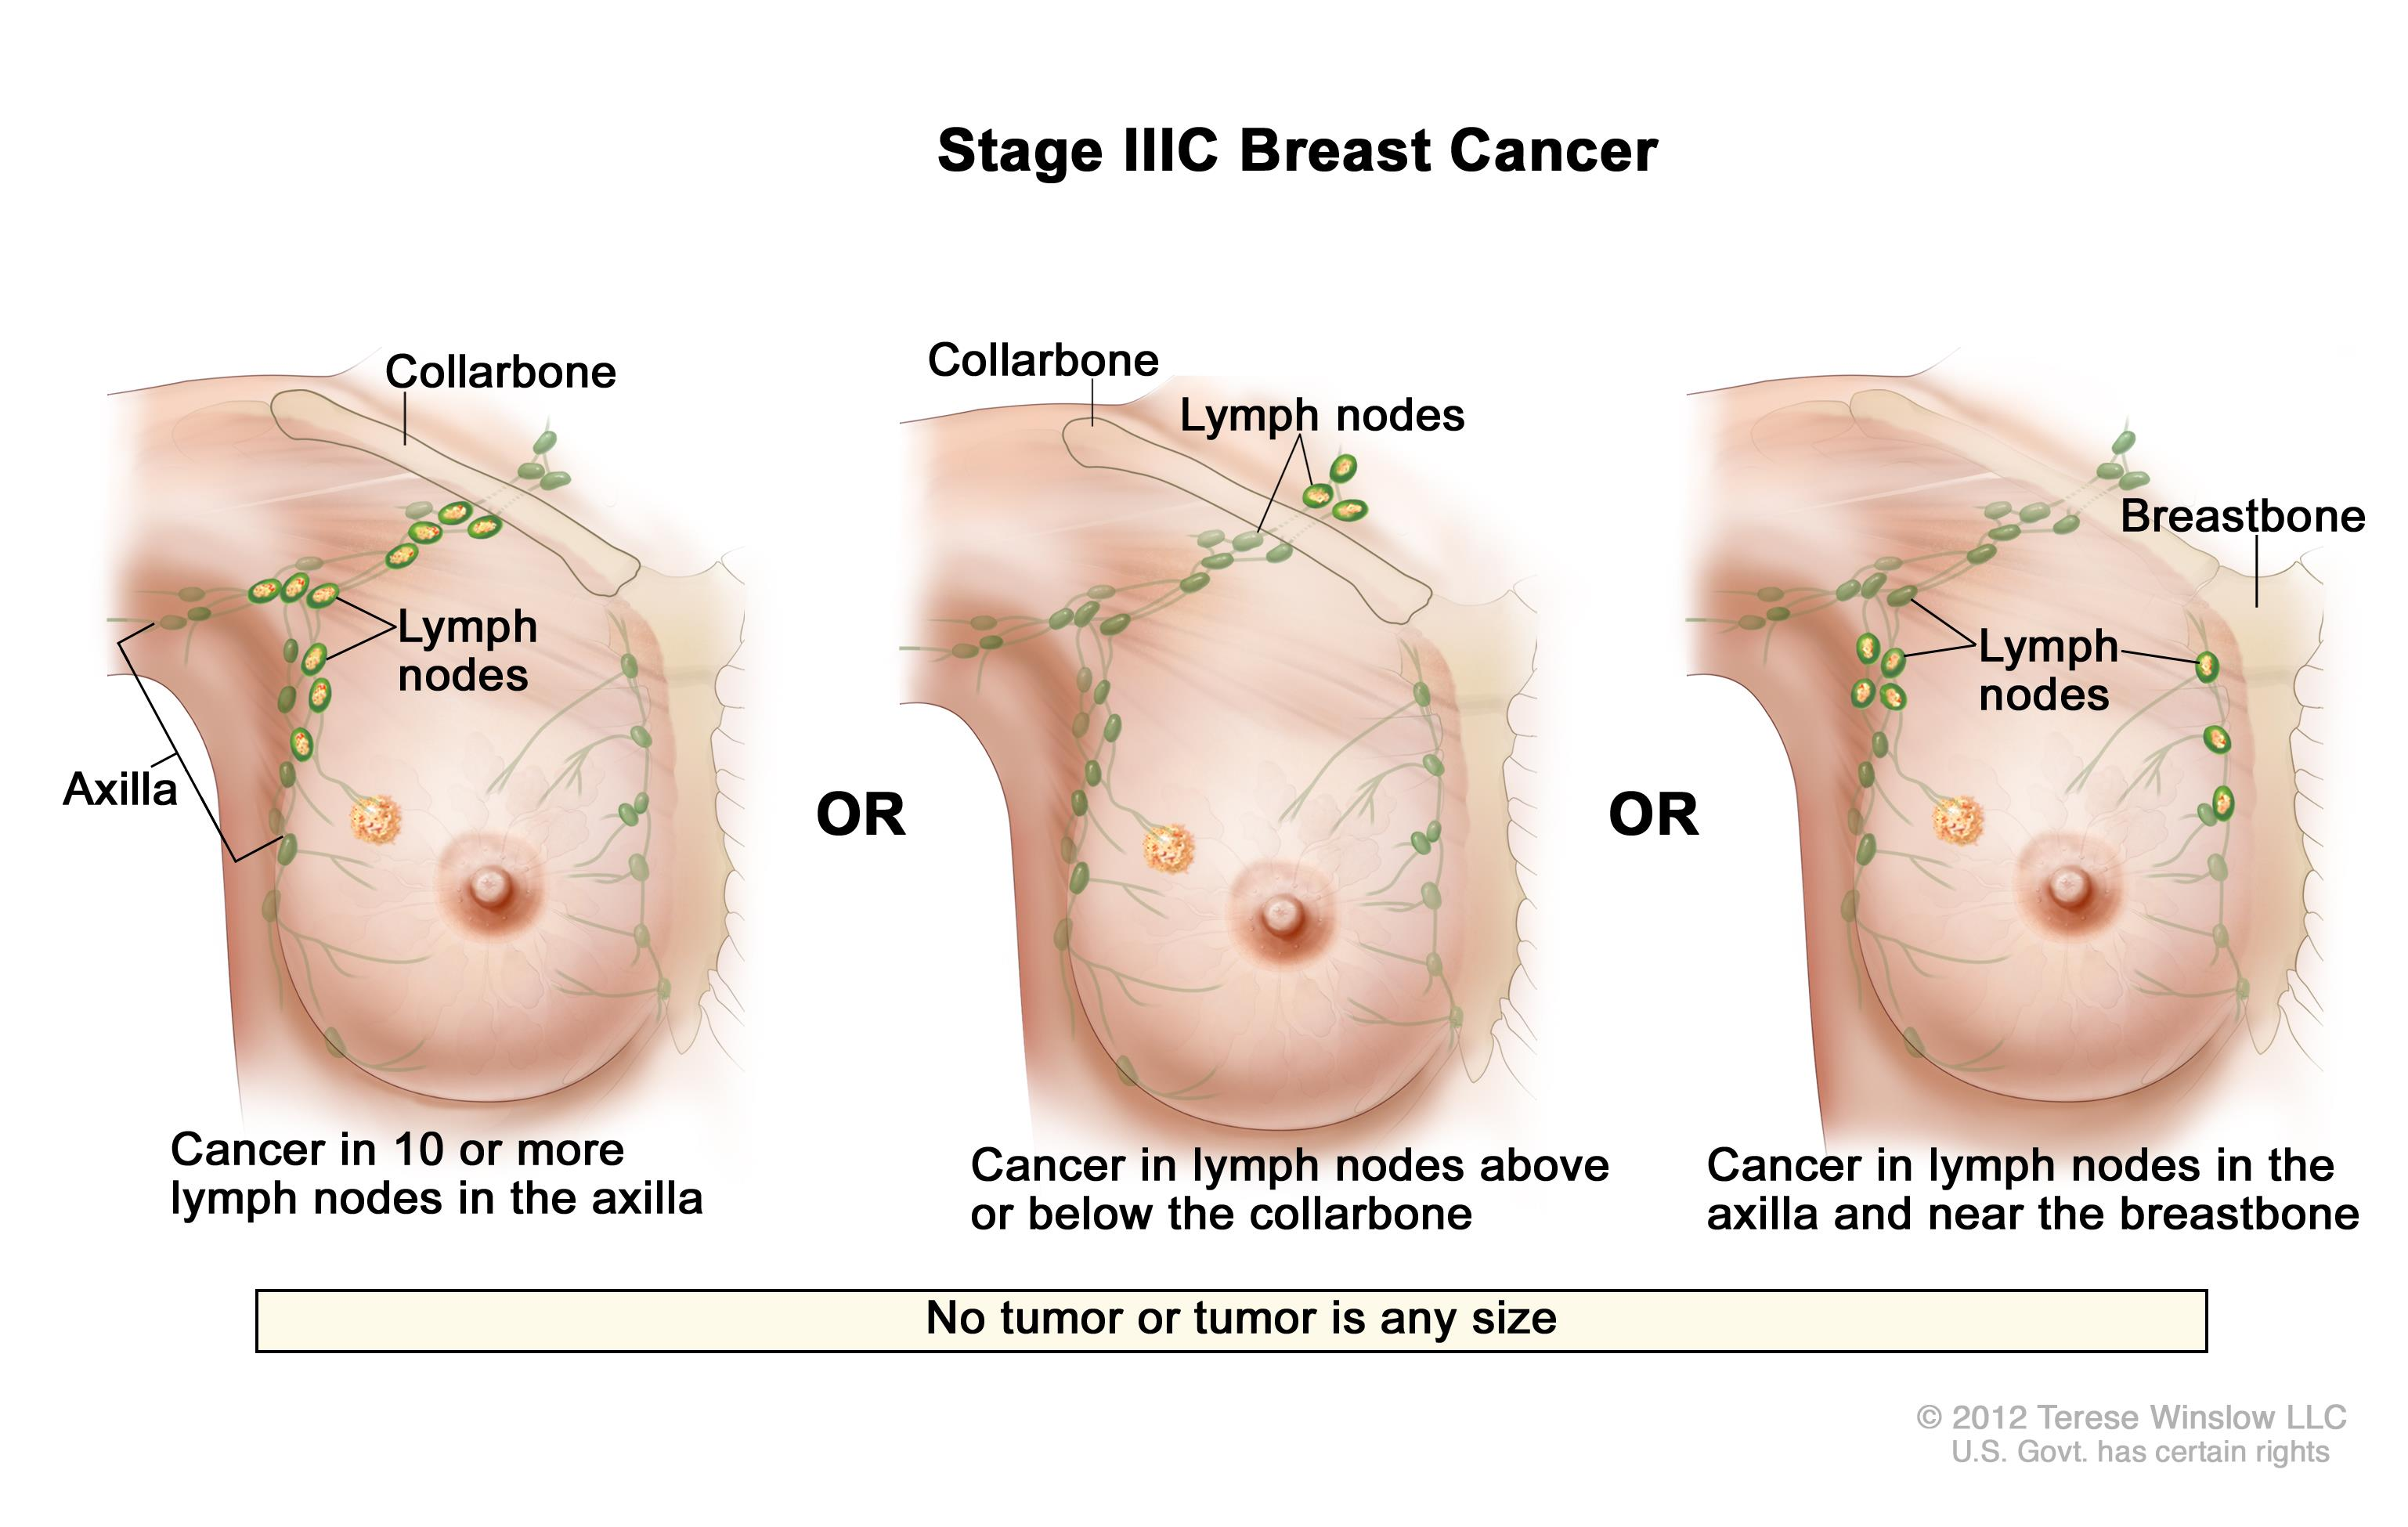 Stage IIIC breast cancer. The drawing on the left shows cancer in lymph nodes in the axilla. The drawing in the middle shows cancer in lymph nodes above the collarbone. The drawing on the right shows cancer in lymph nodes in the axilla and in lymph nodes near the breastbone.